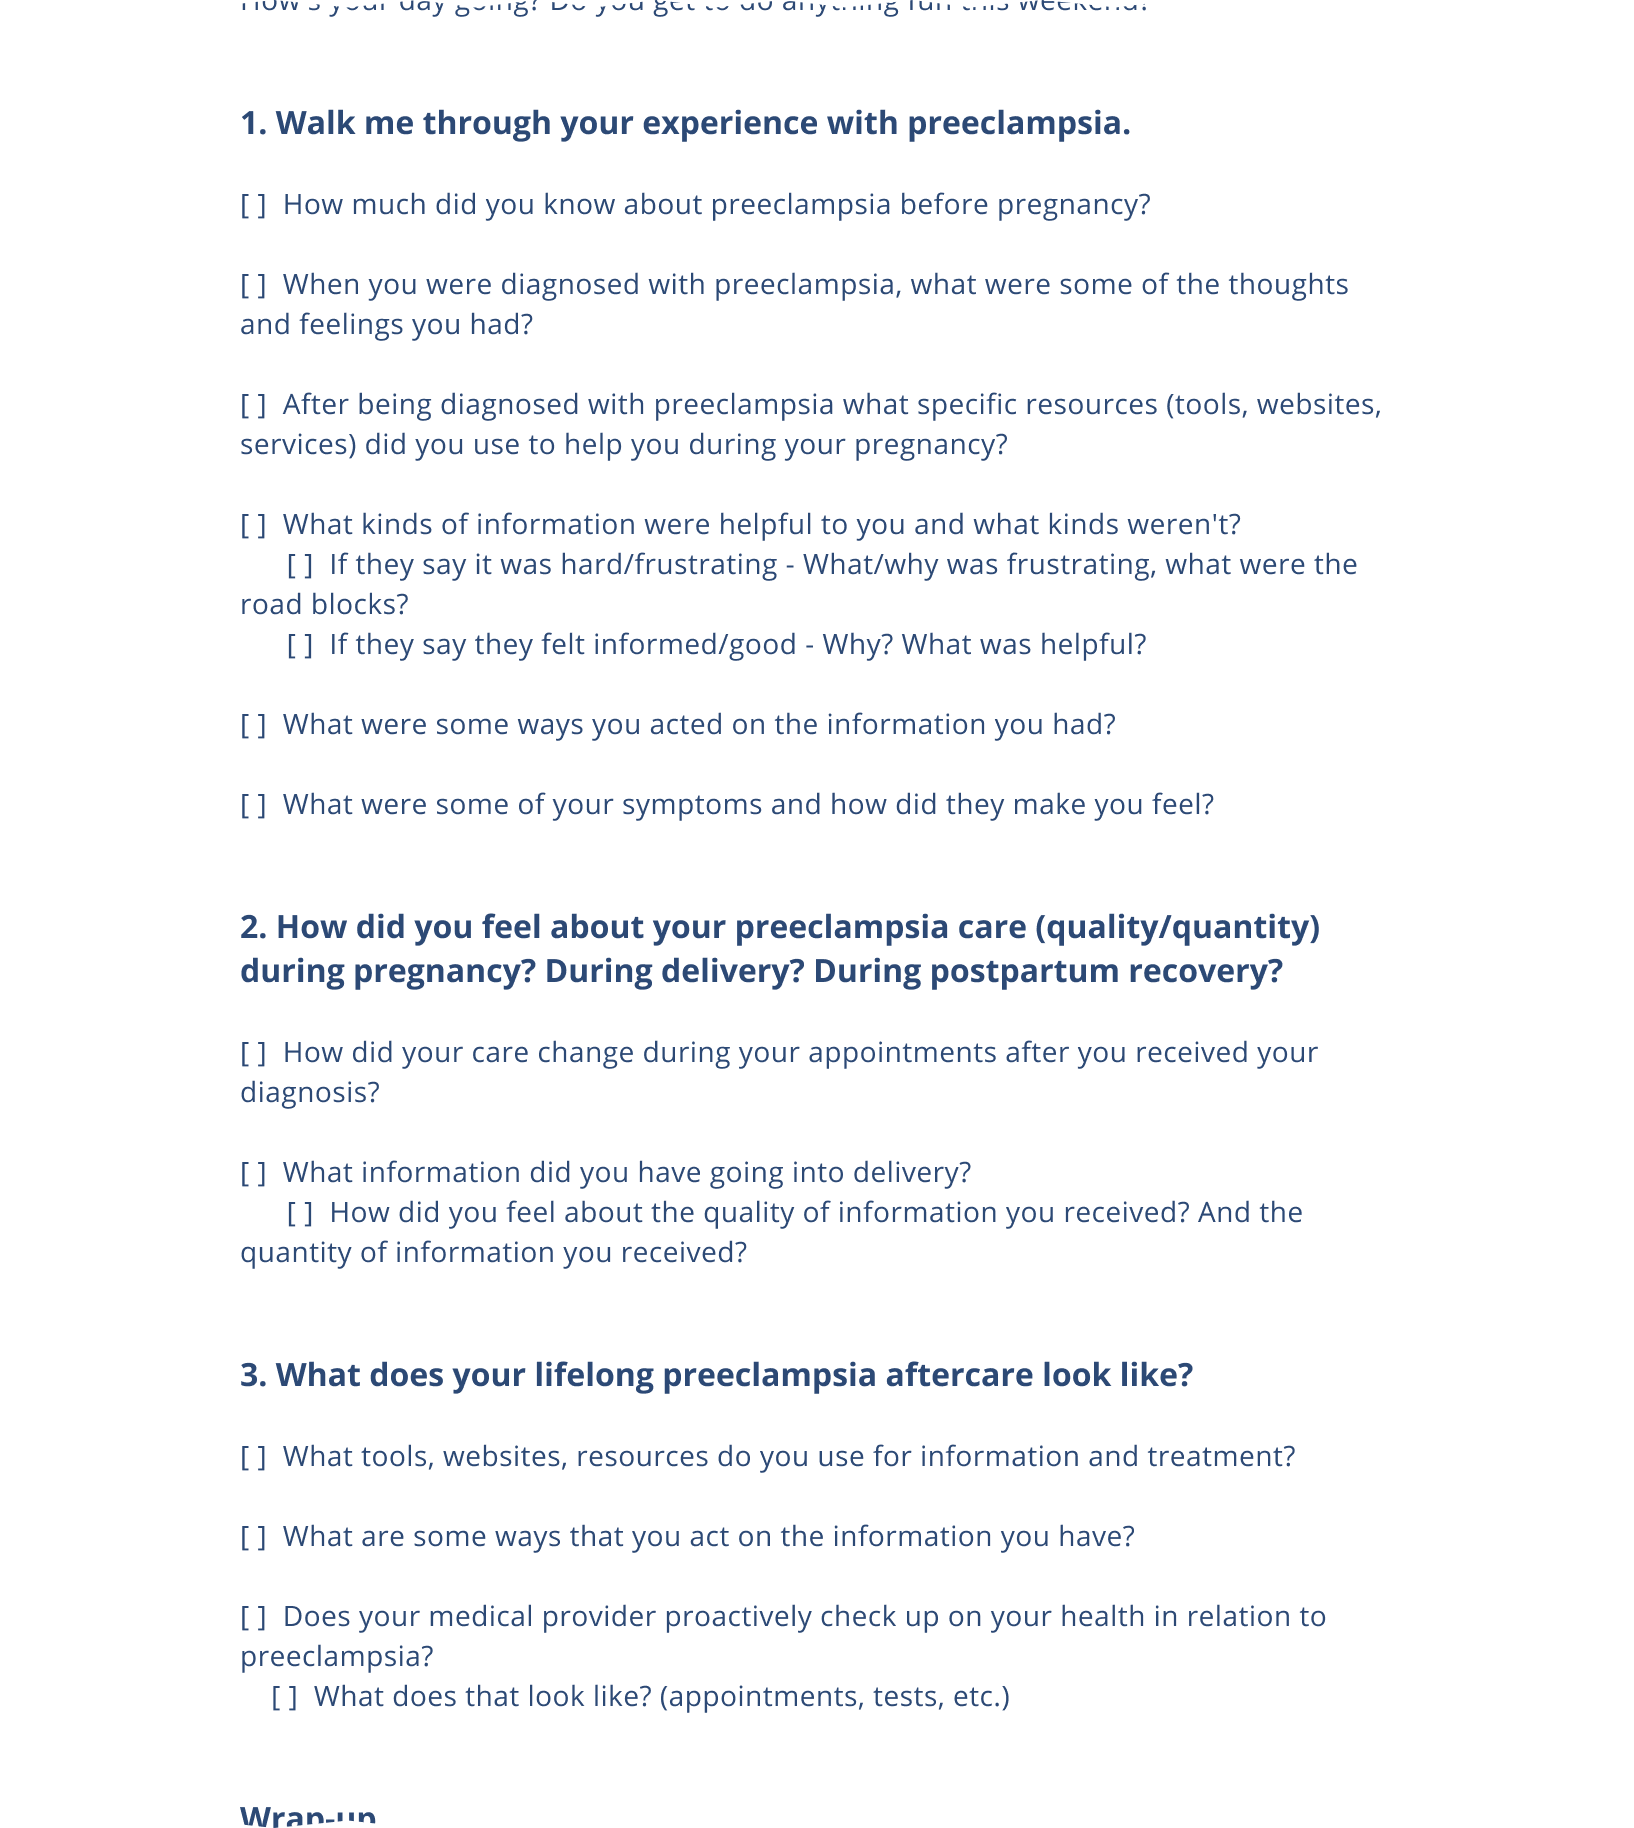 Partial image of a document with typed interview questions.